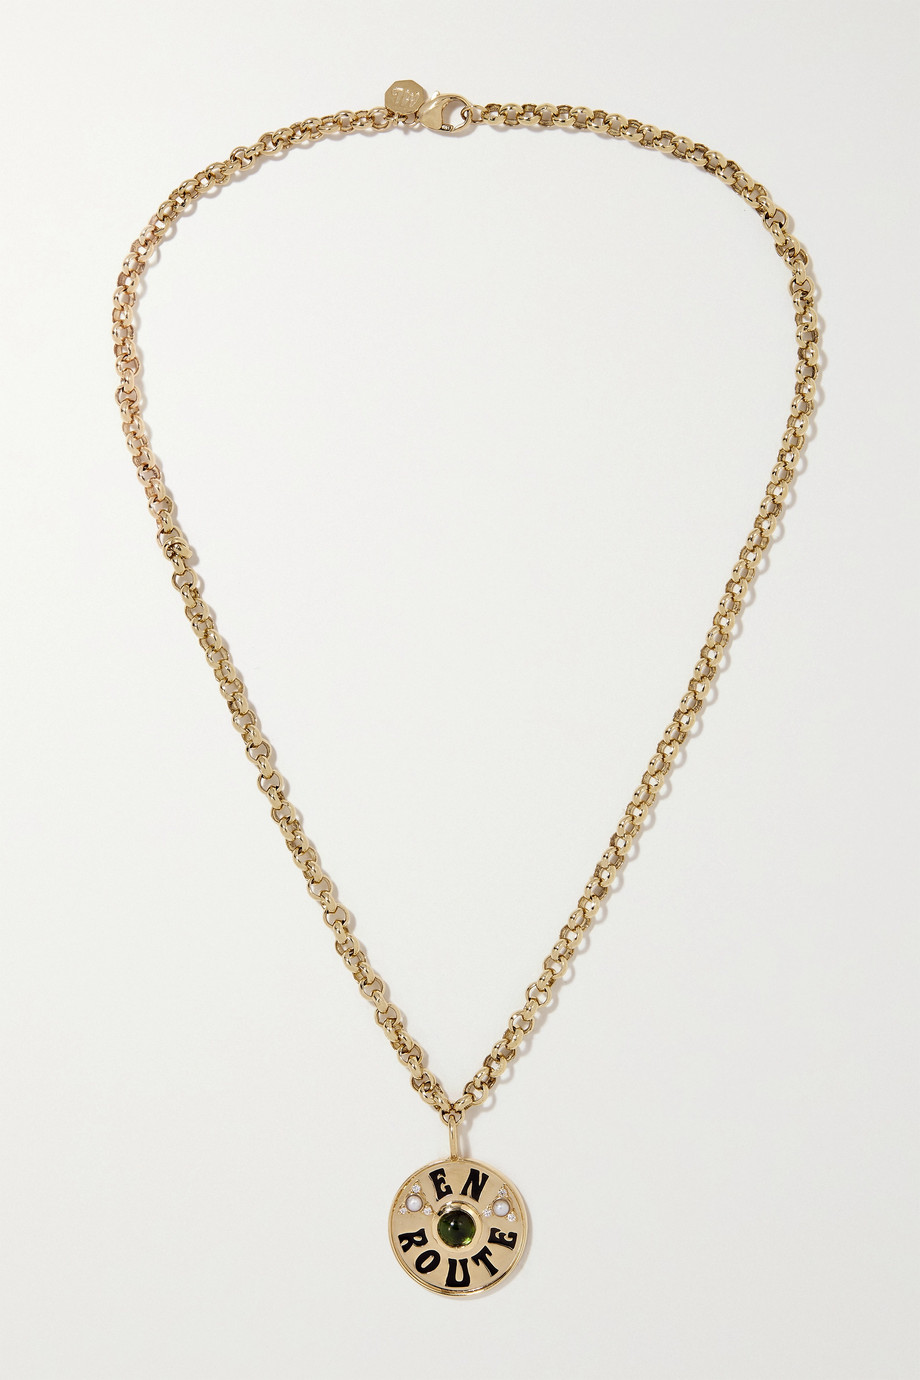 MARLO LAZ En Route 14-karat gold, enamel and multi-stone necklace